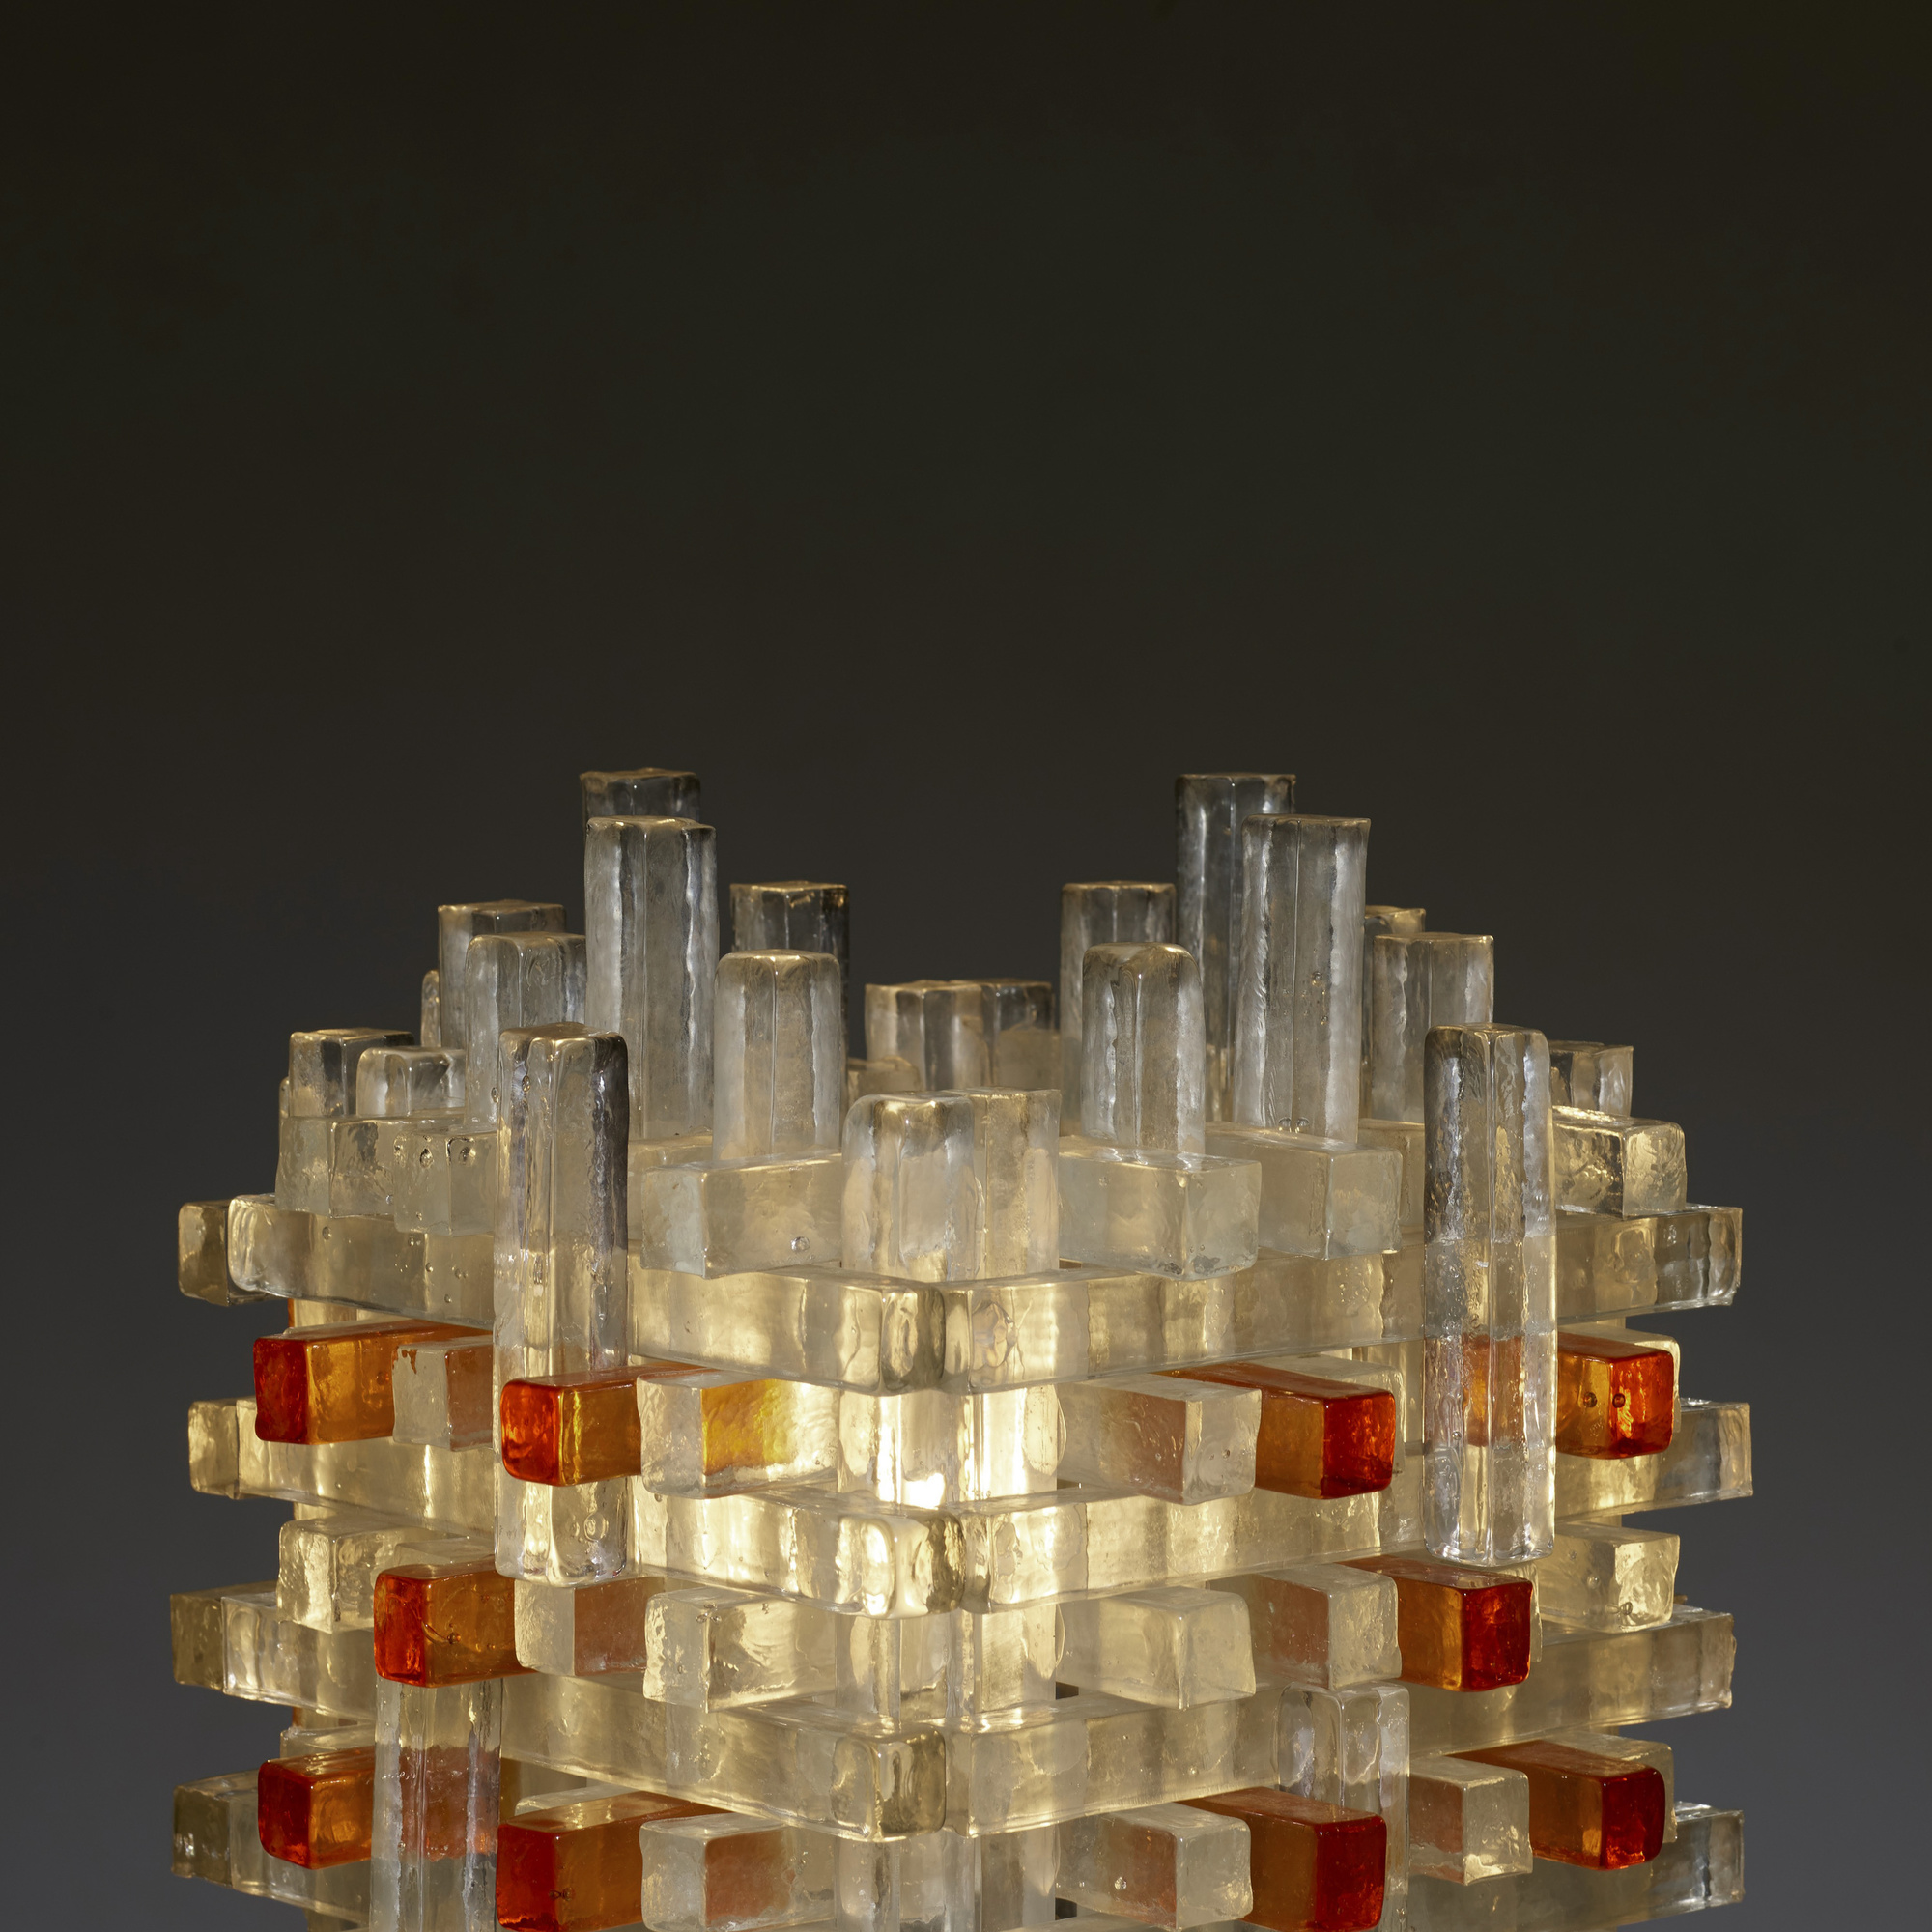 251: Poliarte / Mimas table lamp (2 of 3)